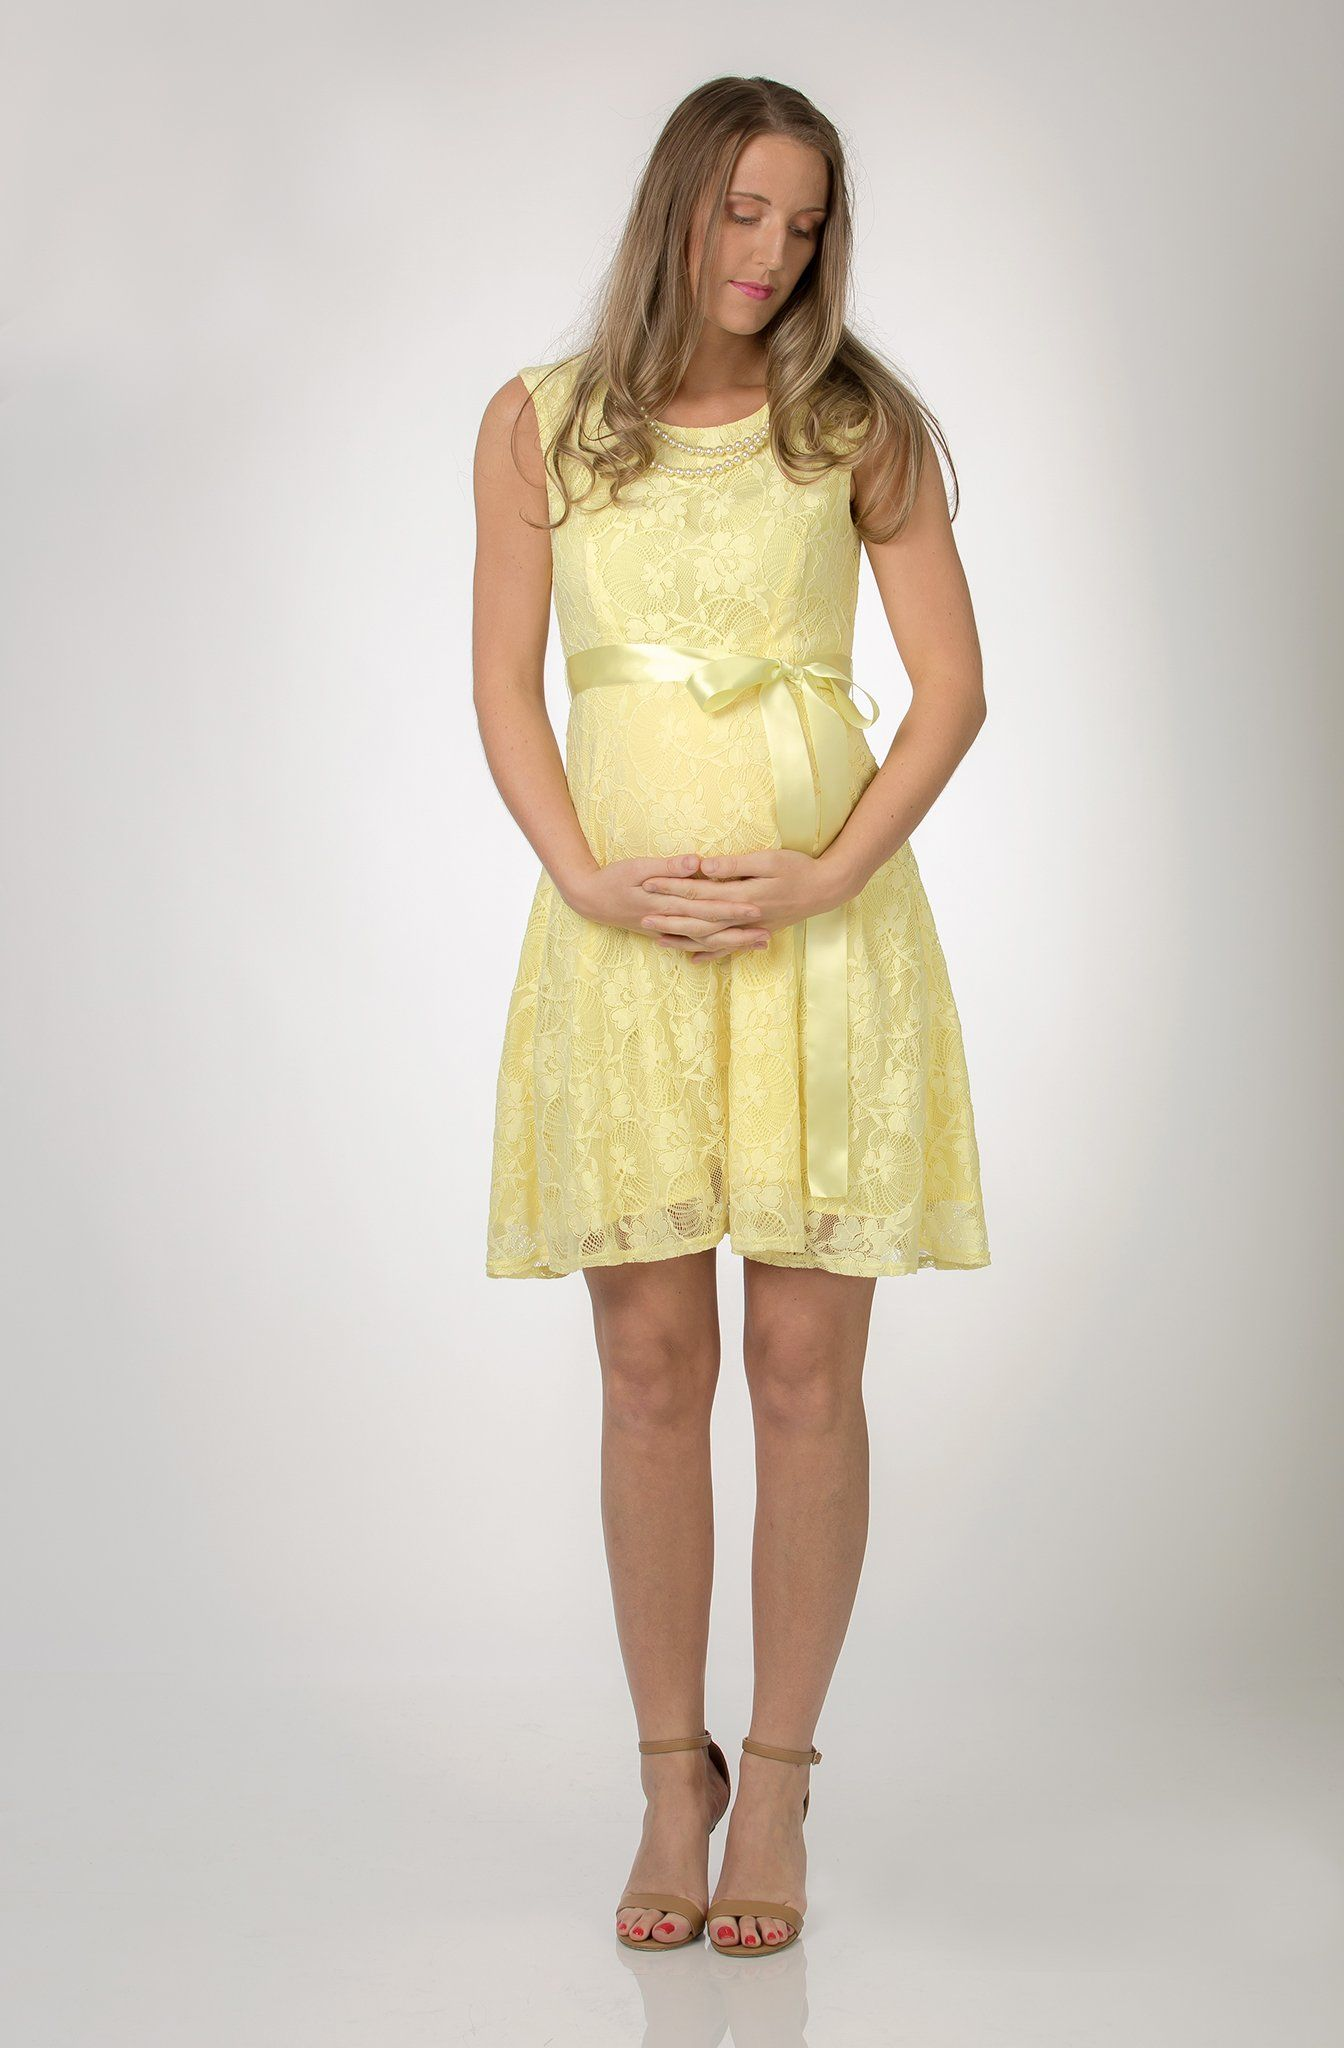 6e9c5516f9775 Yellow Lace Baby Shower, Evening, Formal Maternity Dress - Maternity ...